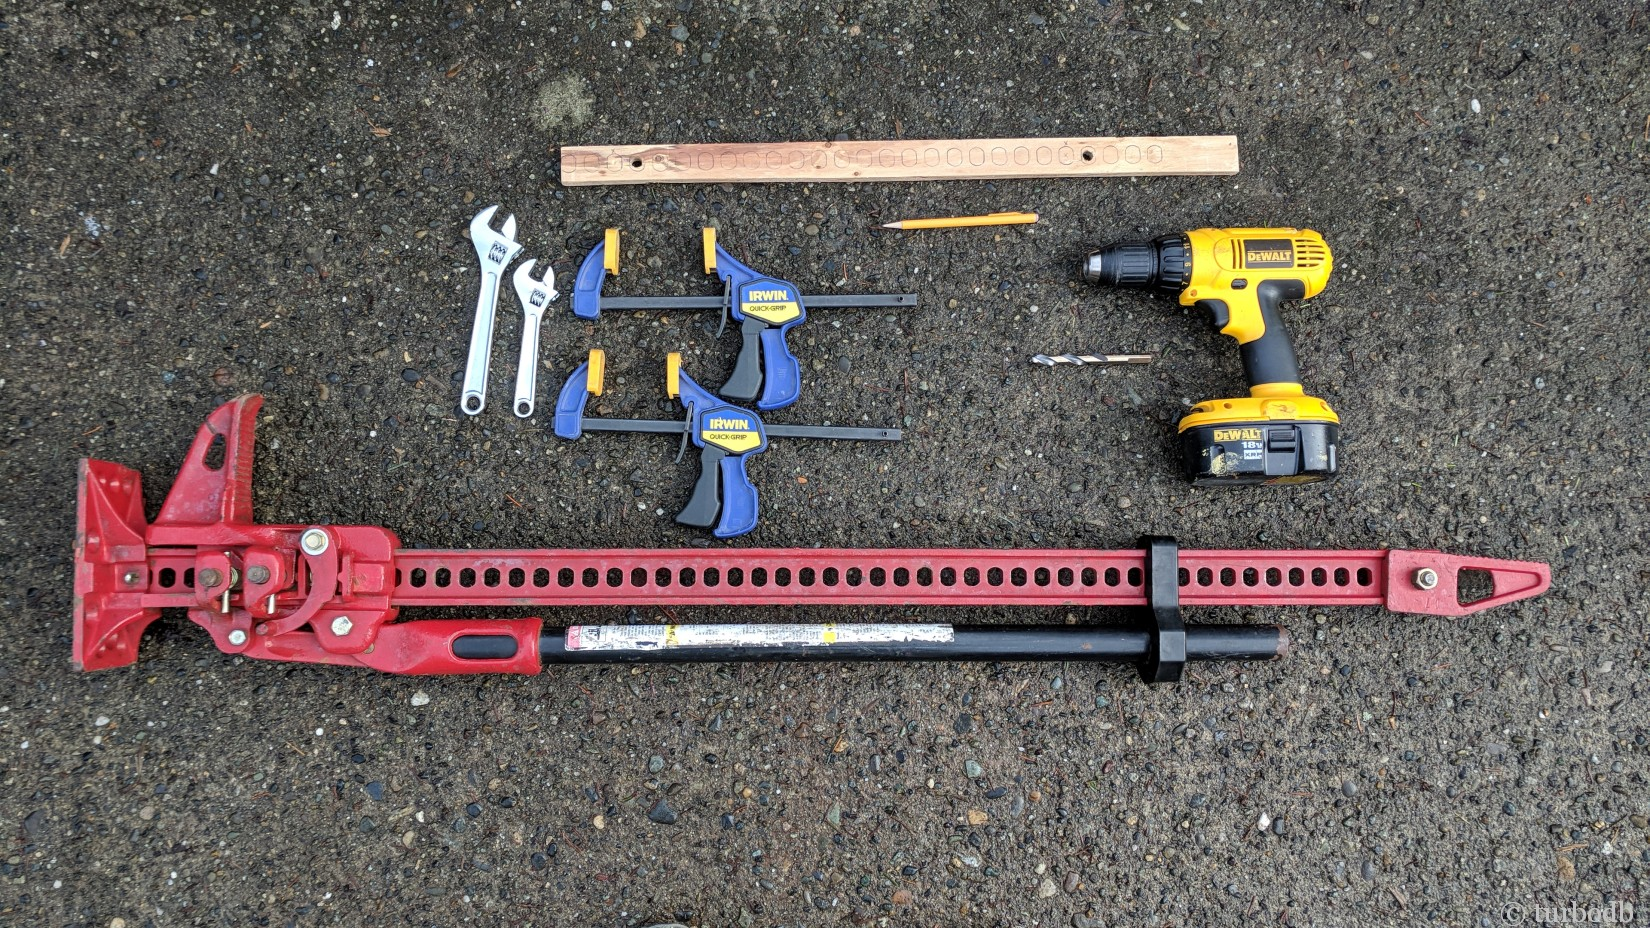 Tools for installation of the Hi-Lift mount.